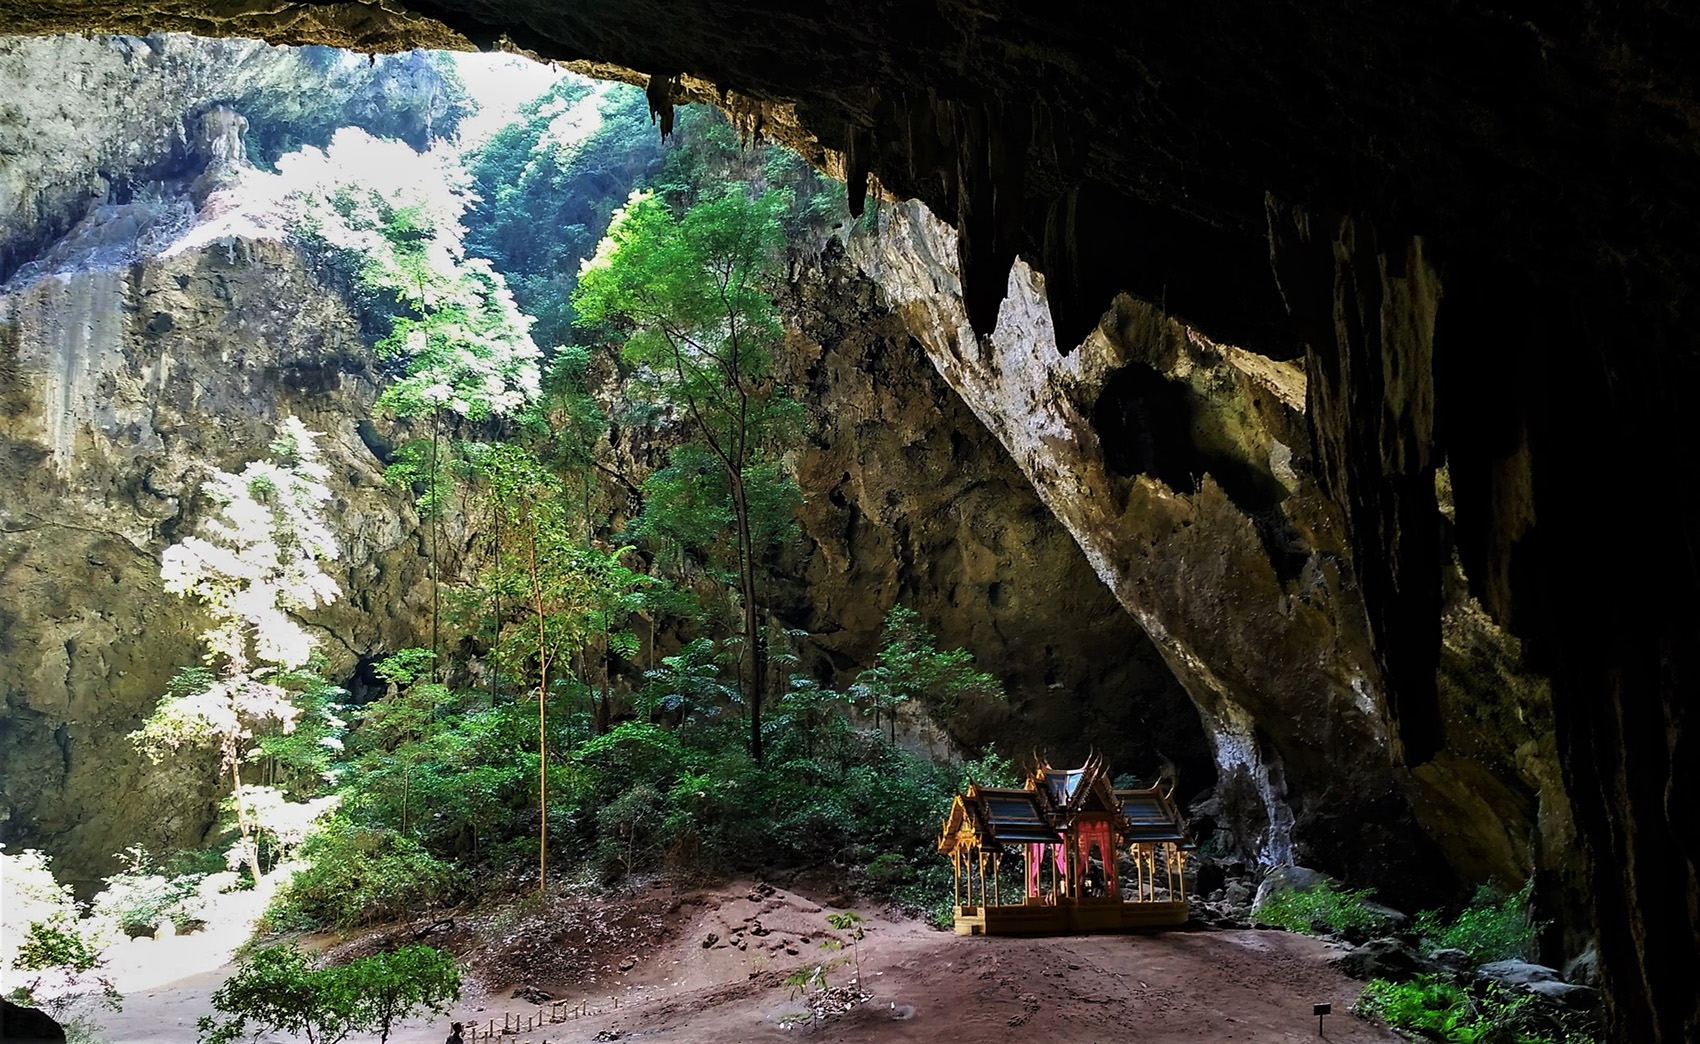 photo of an ornate house inside a cave